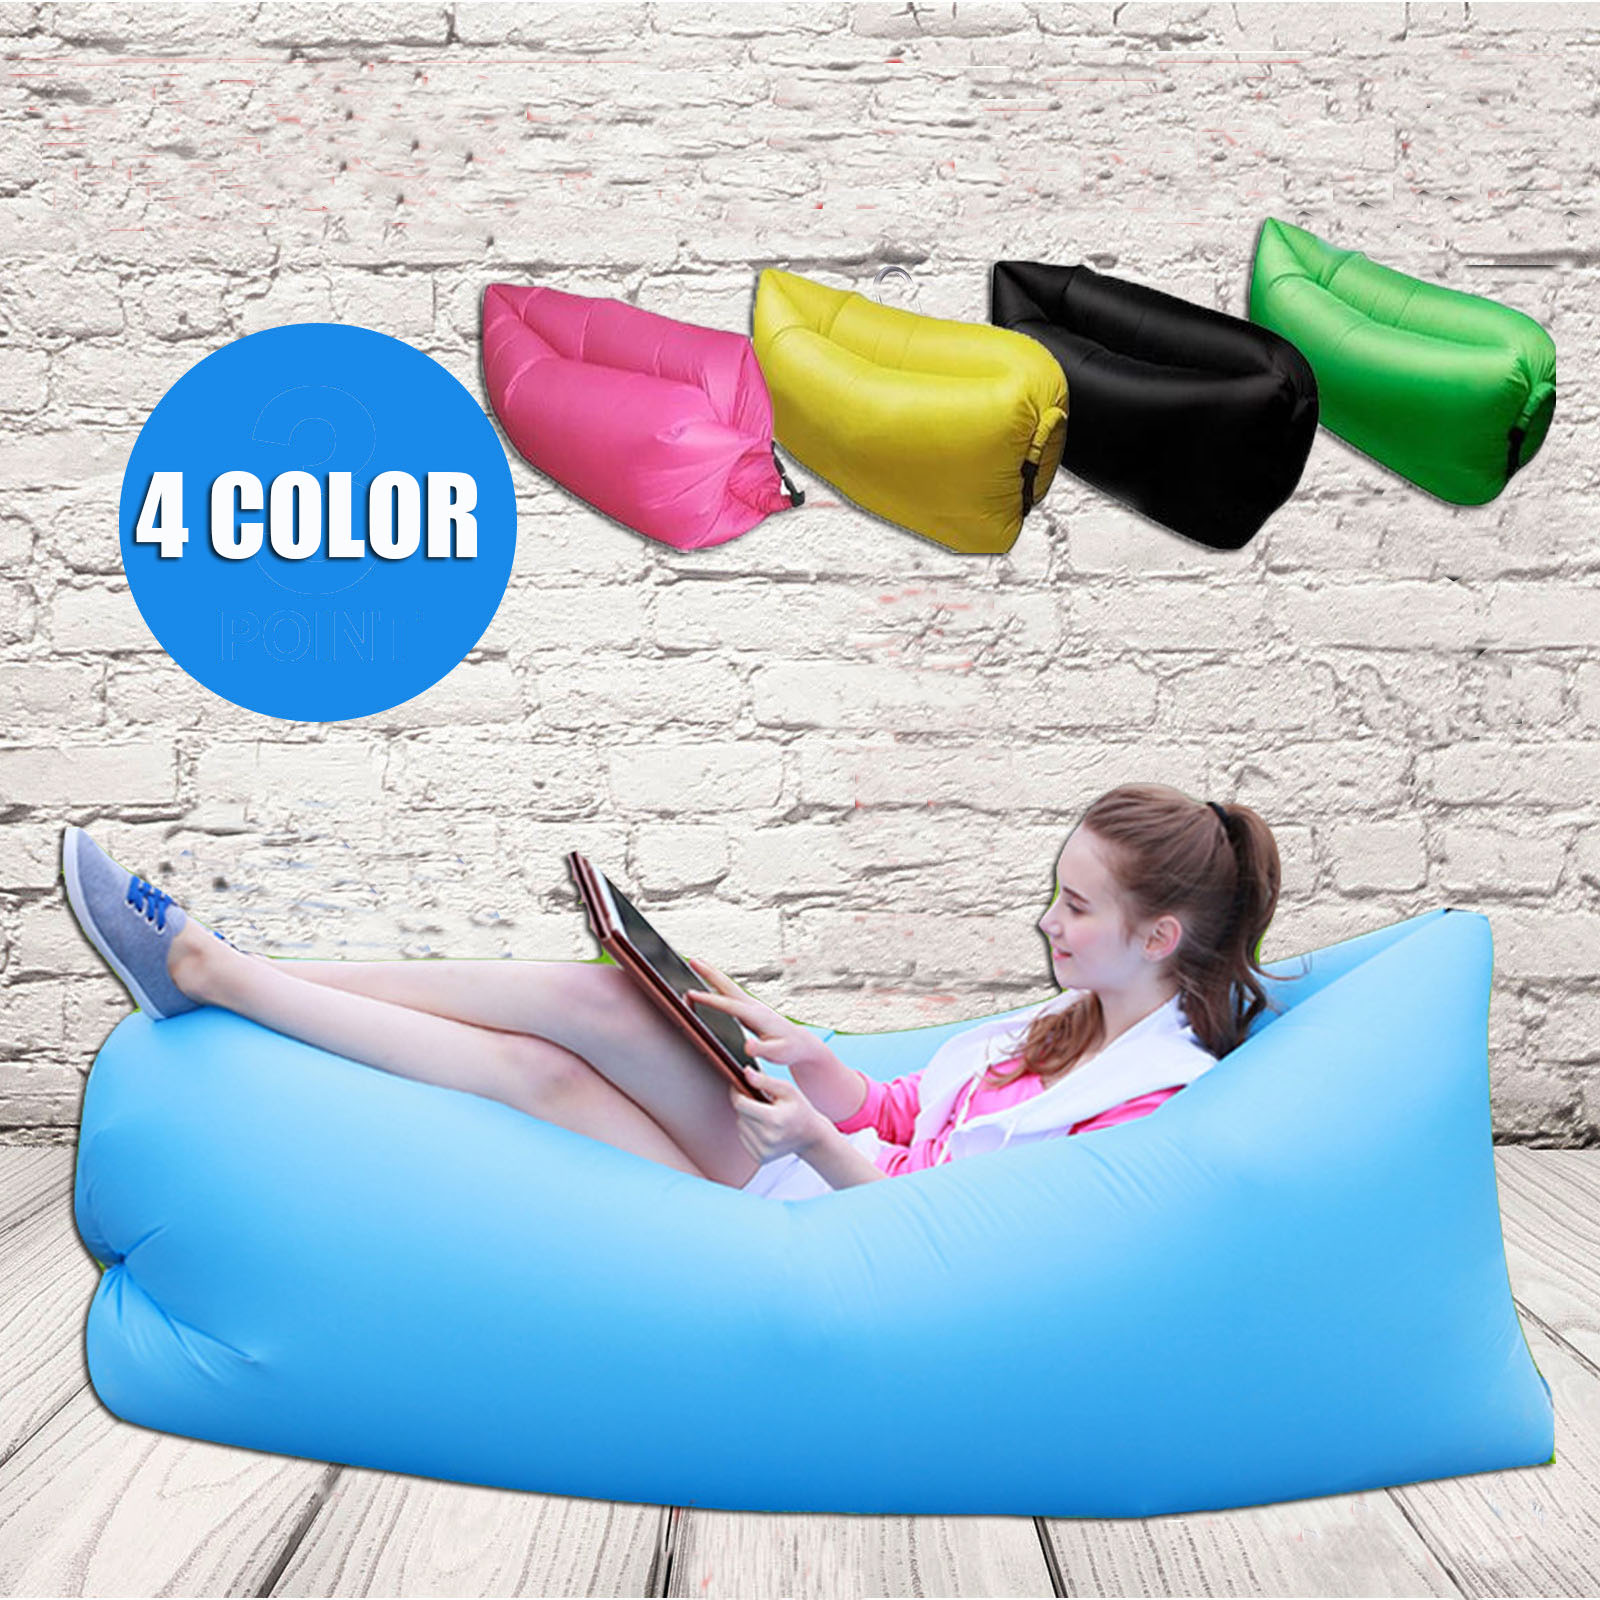 Inflatable Lounge Pod Picnic Air Sleeping Bag Camping Lazy Chair